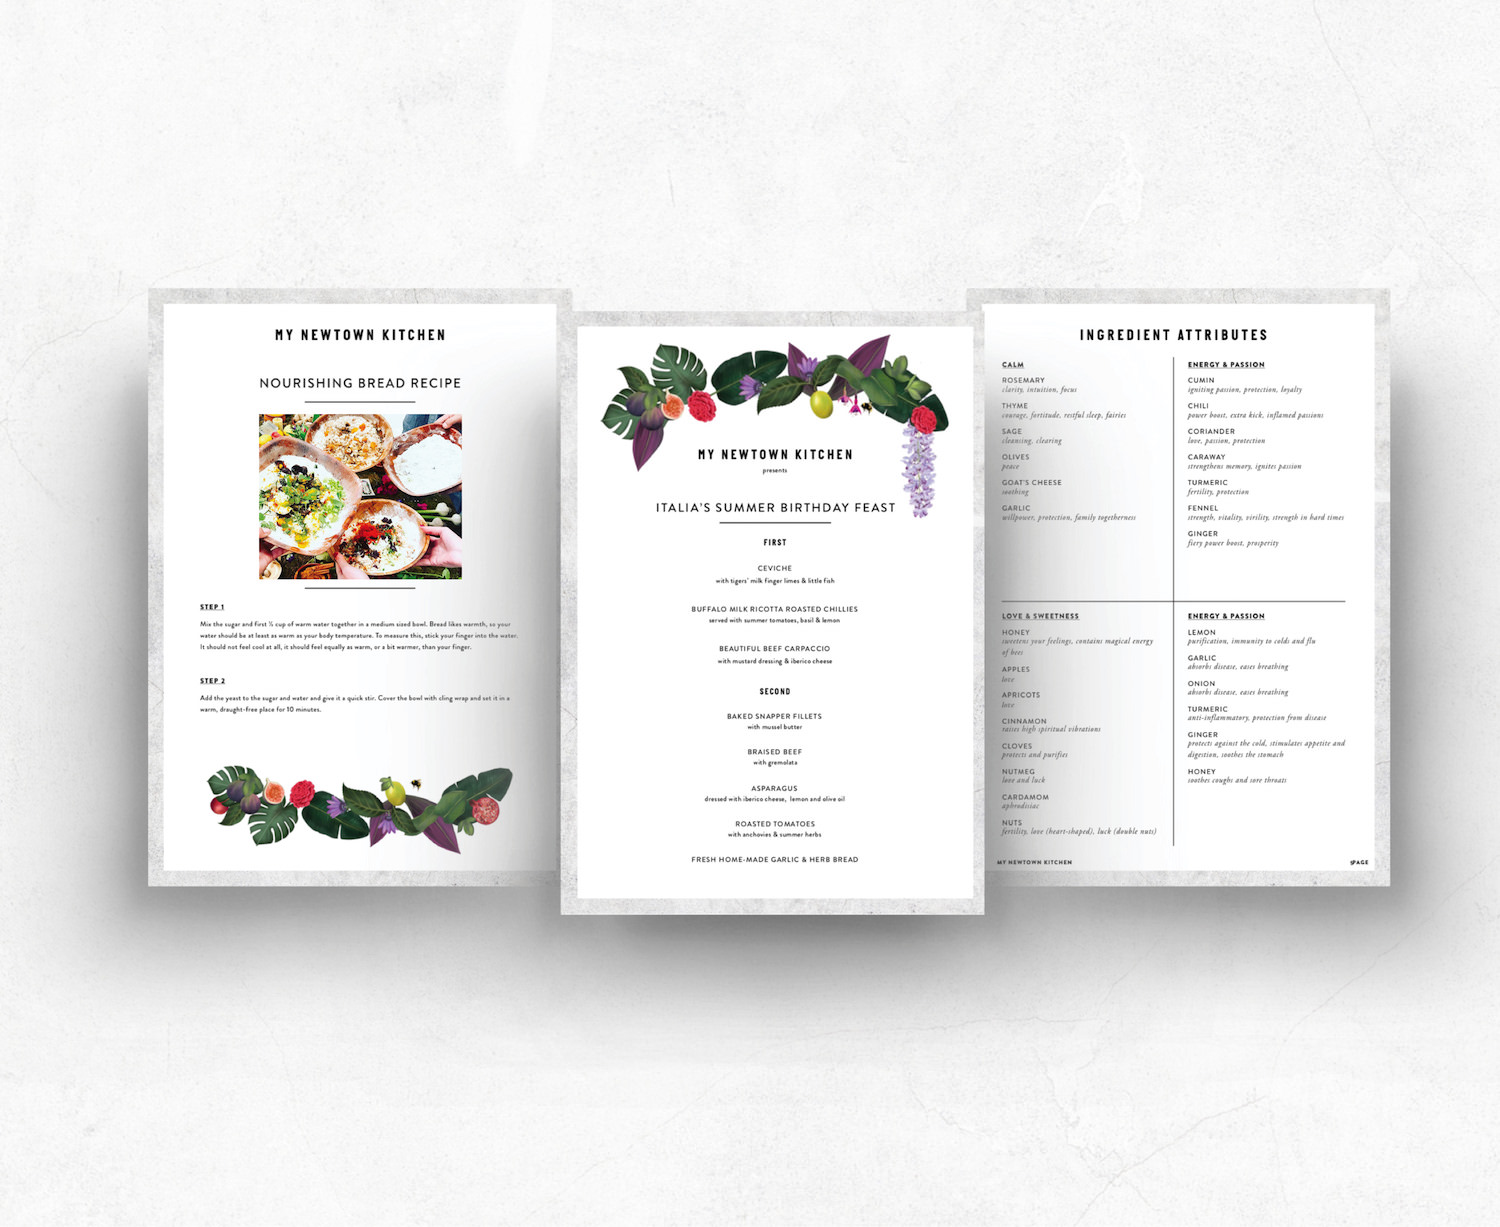 printed templates for recipes, ingredients and menus